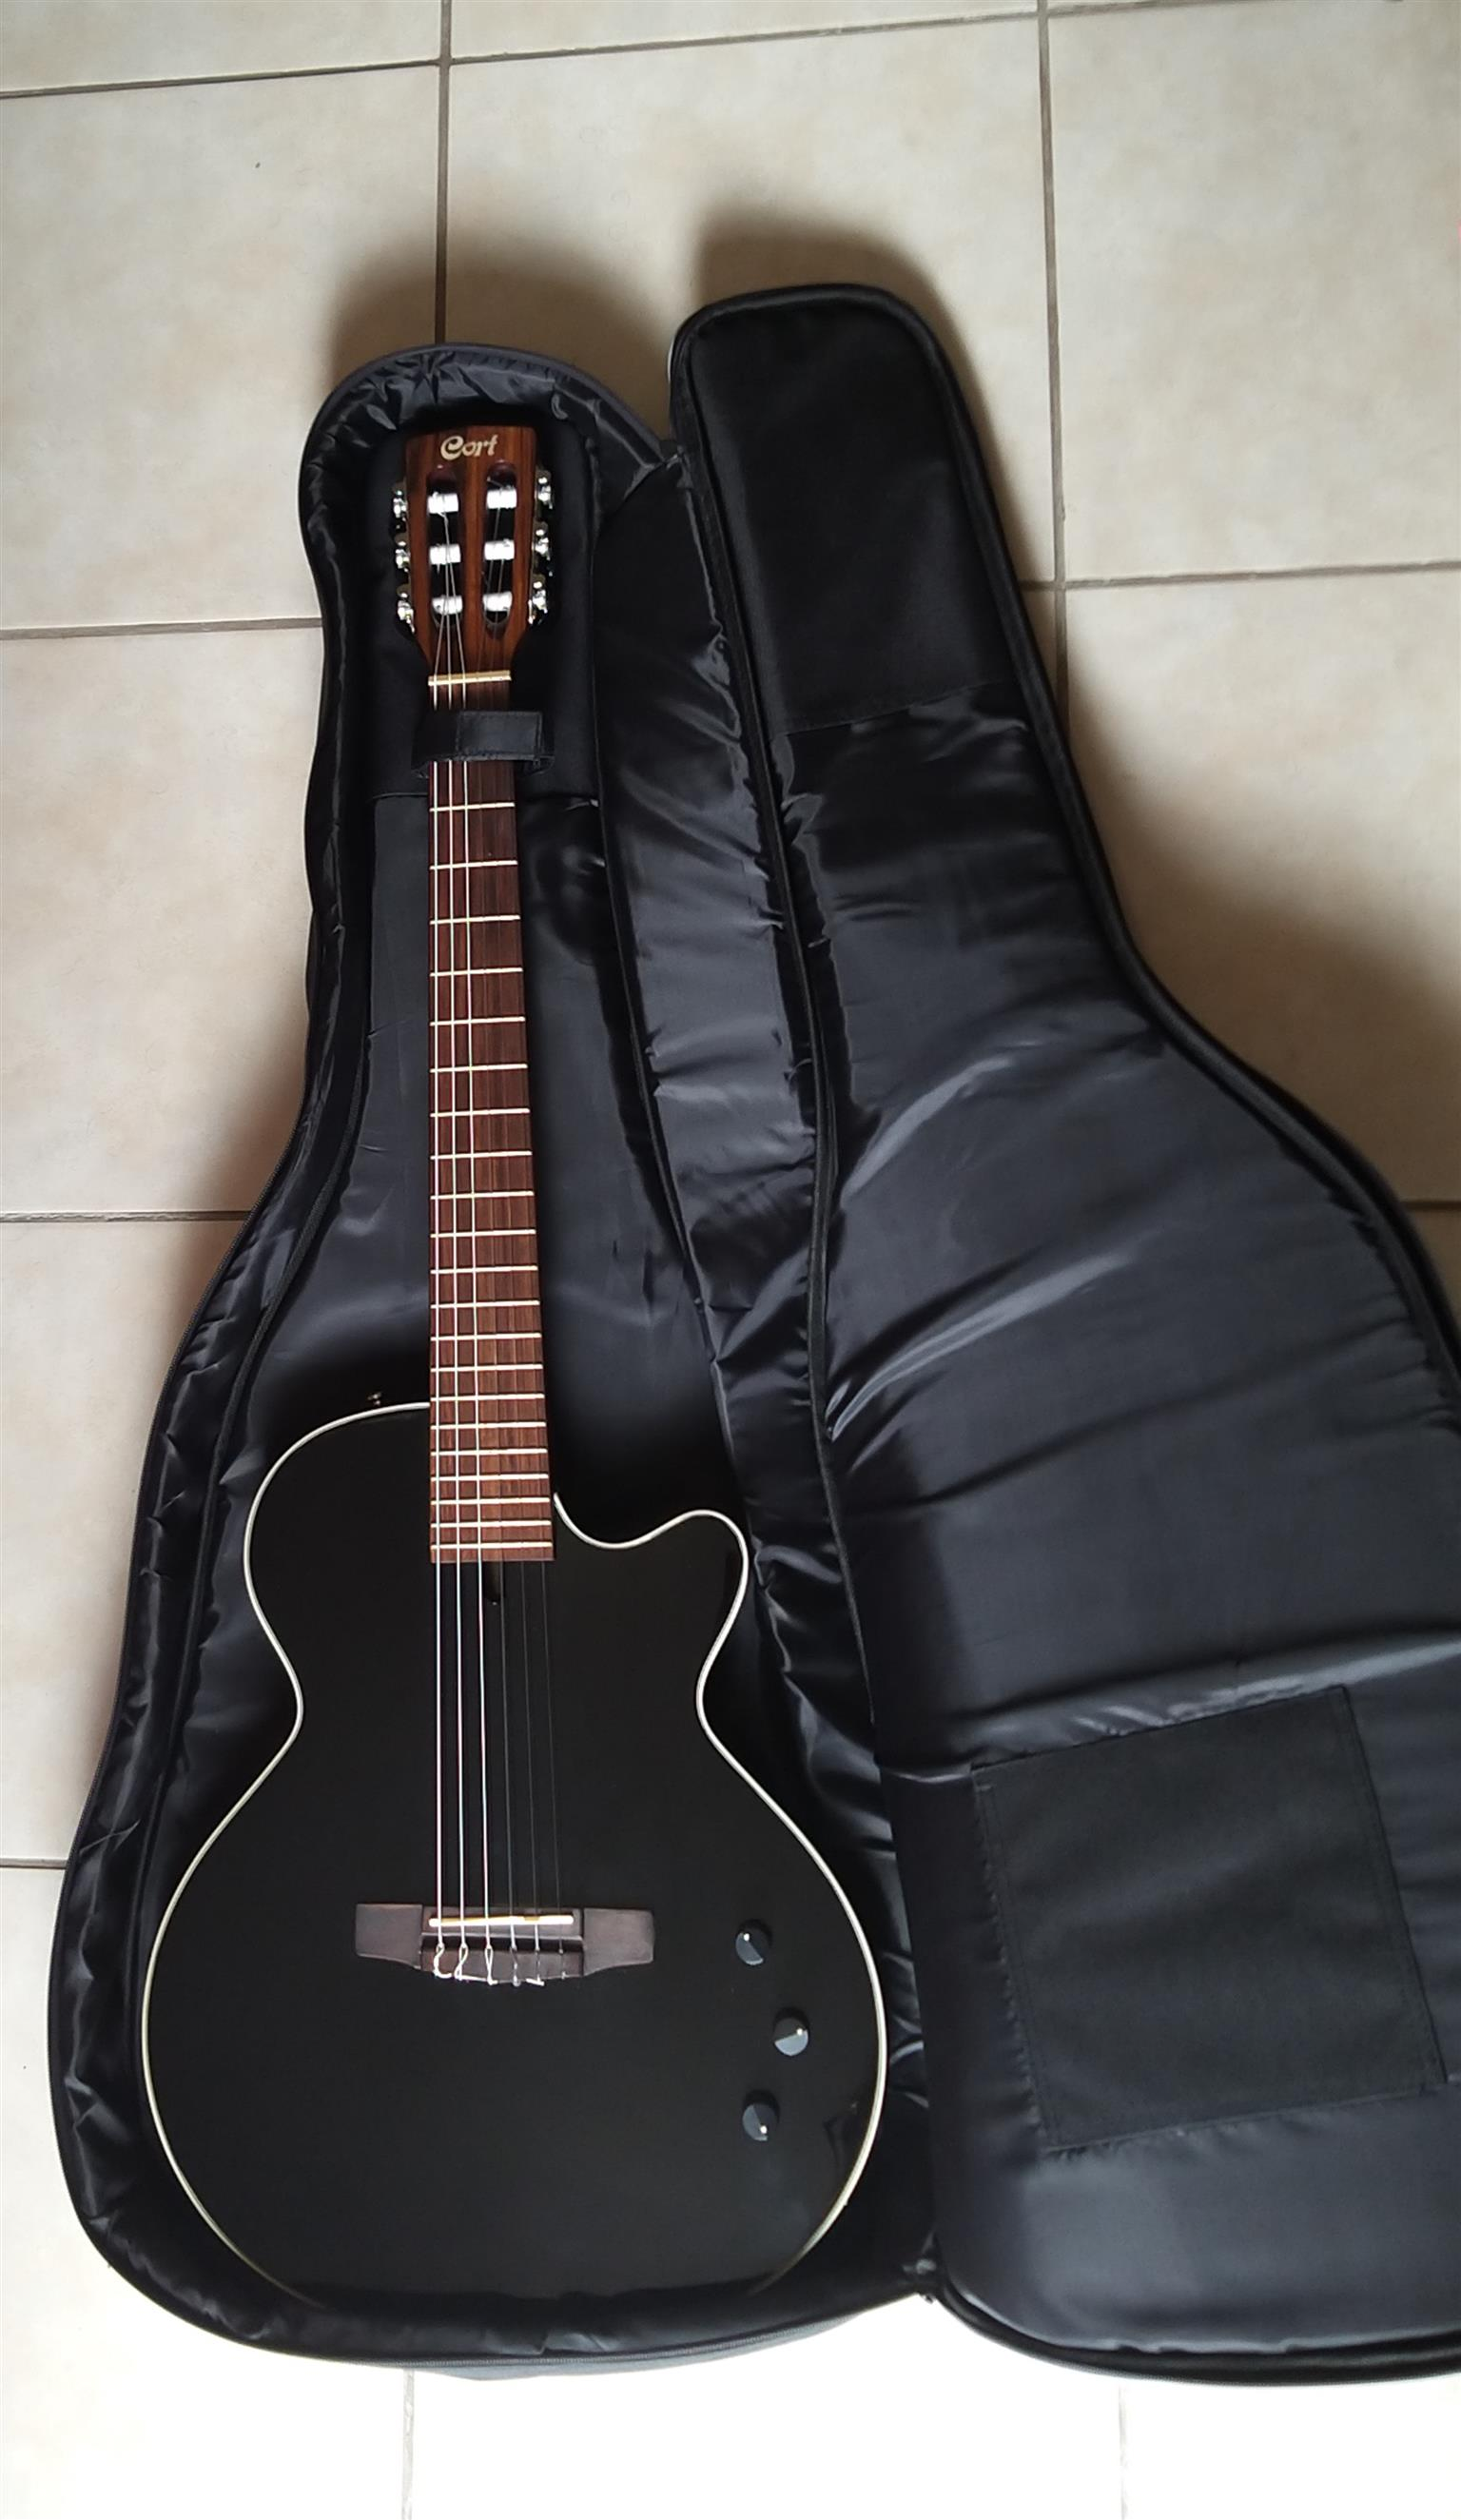 Cort Classical Nylon String Electric Guitar with bag included.